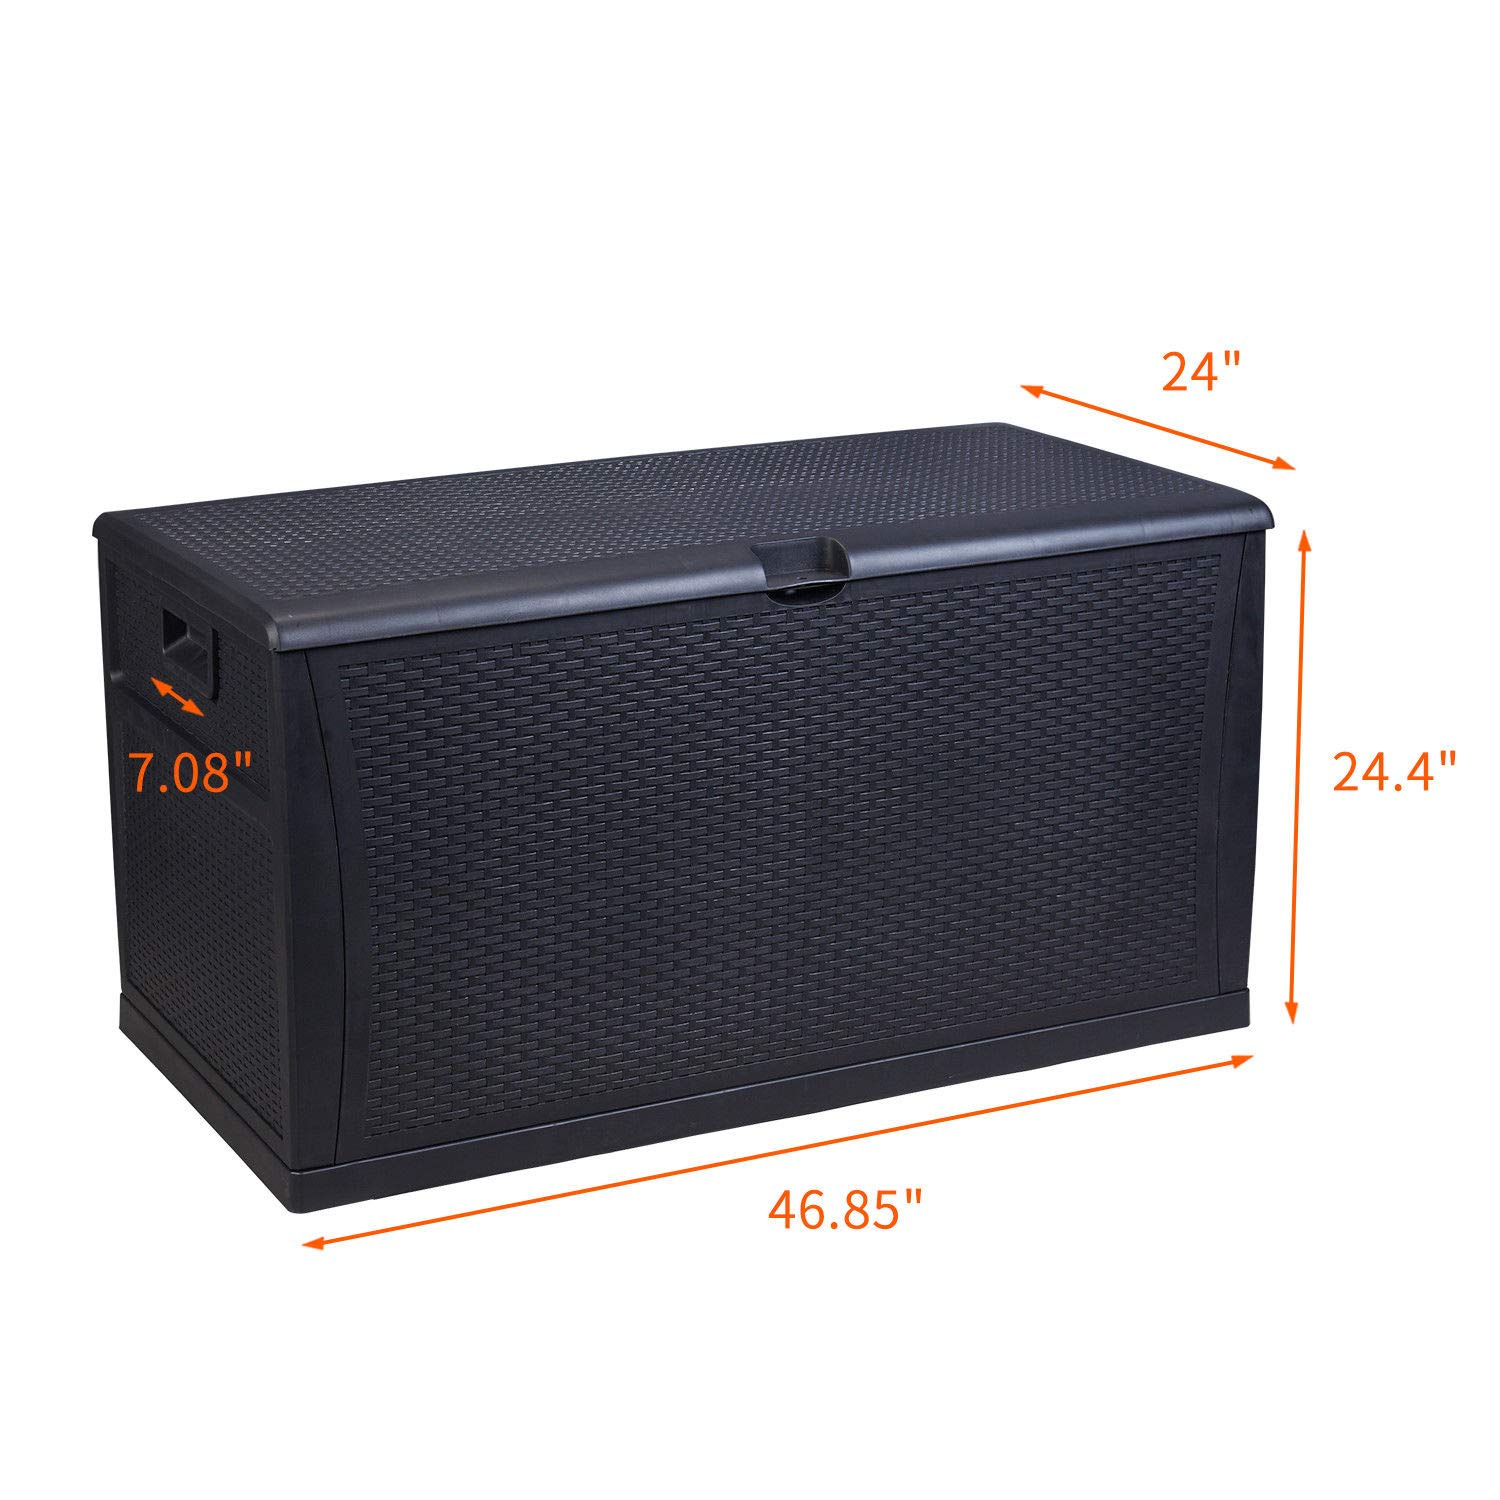 HYD-Parts Black Patio Storage Bench Indoor Outdoor Deck Box, Garden Storage Plastic Container Bench Box 120 Gallon